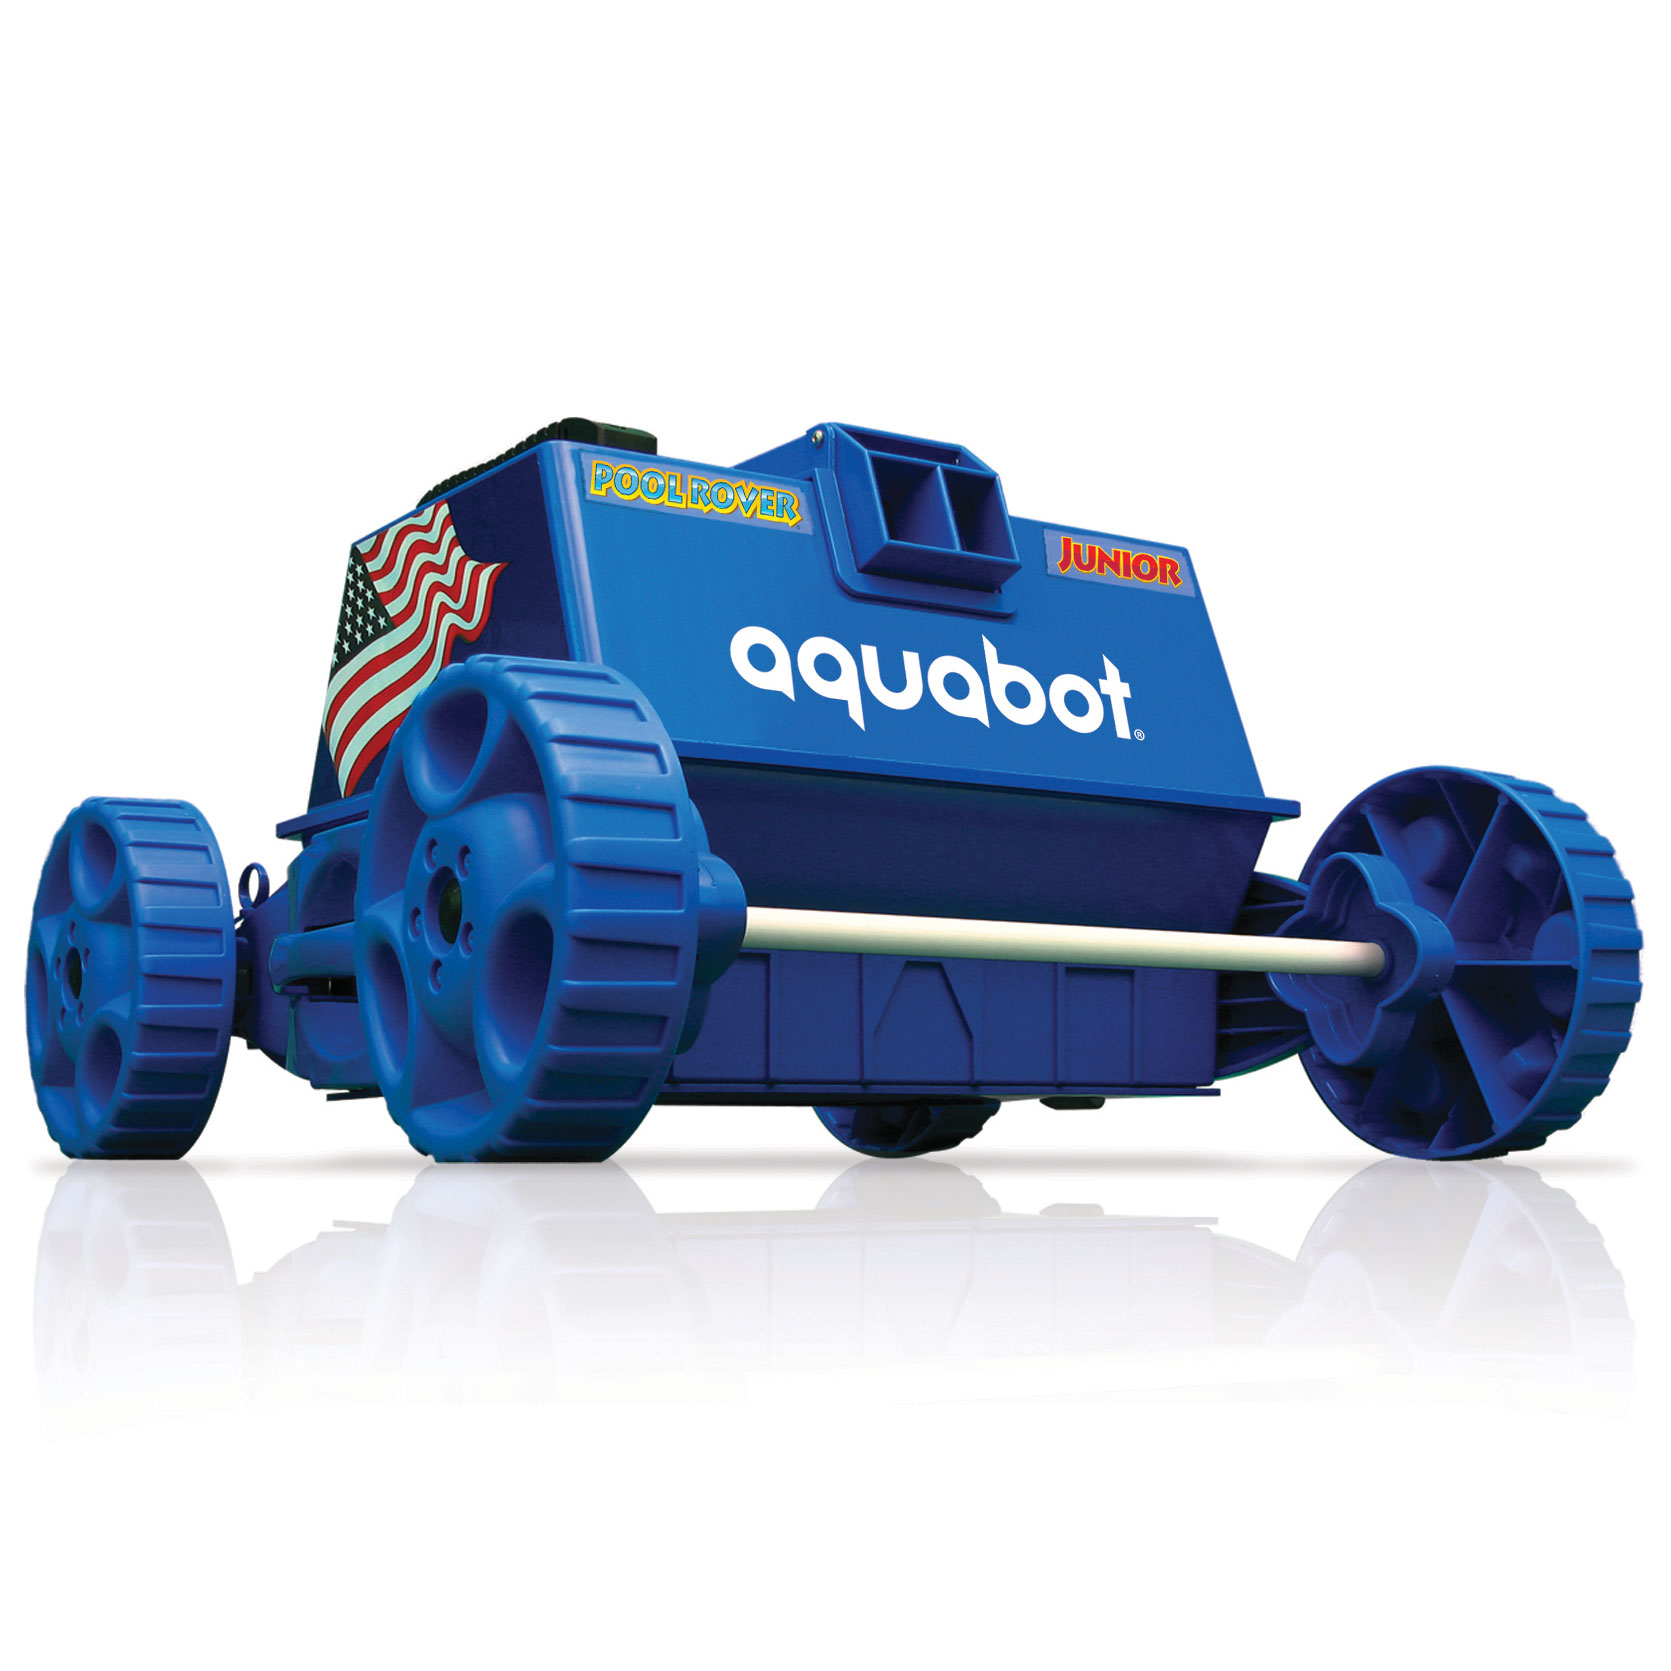 Details about Aquabot Pool Rover Junior Jr. Above Ground Swimming Pool  Robot Cleaner | APRVJR